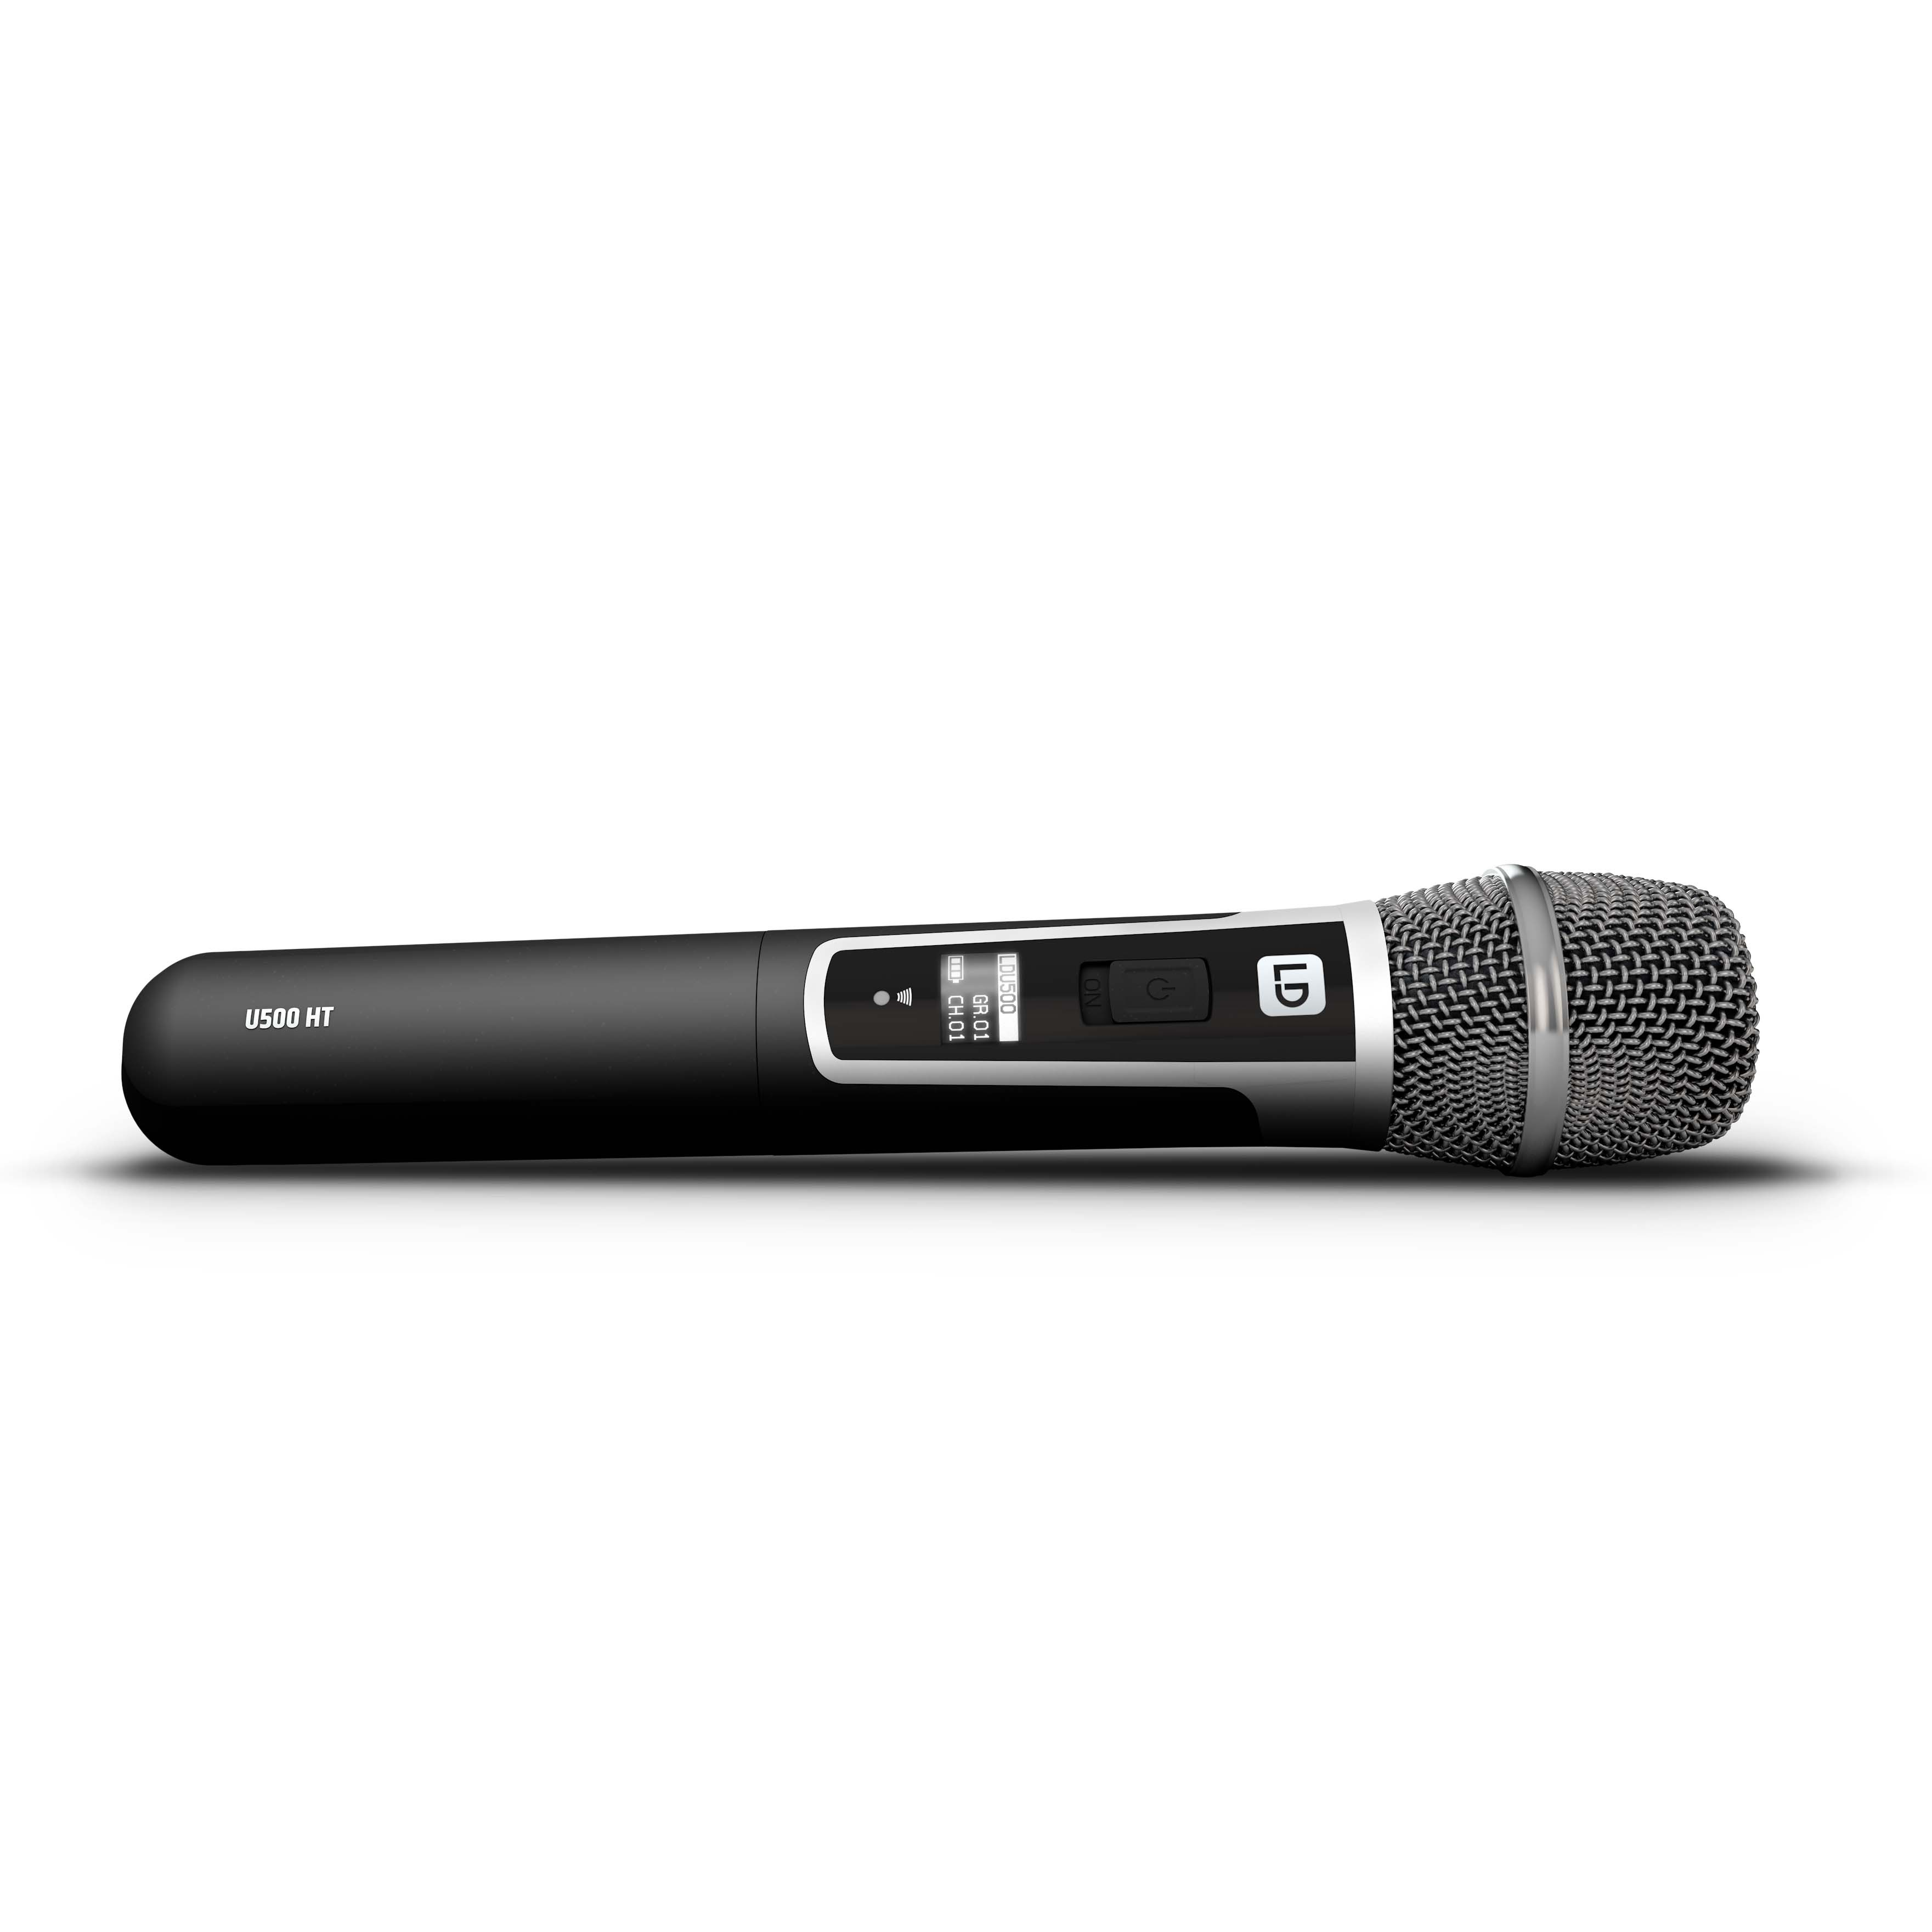 U518 HHC Wireless Microphone System with Condenser Handheld Microphone